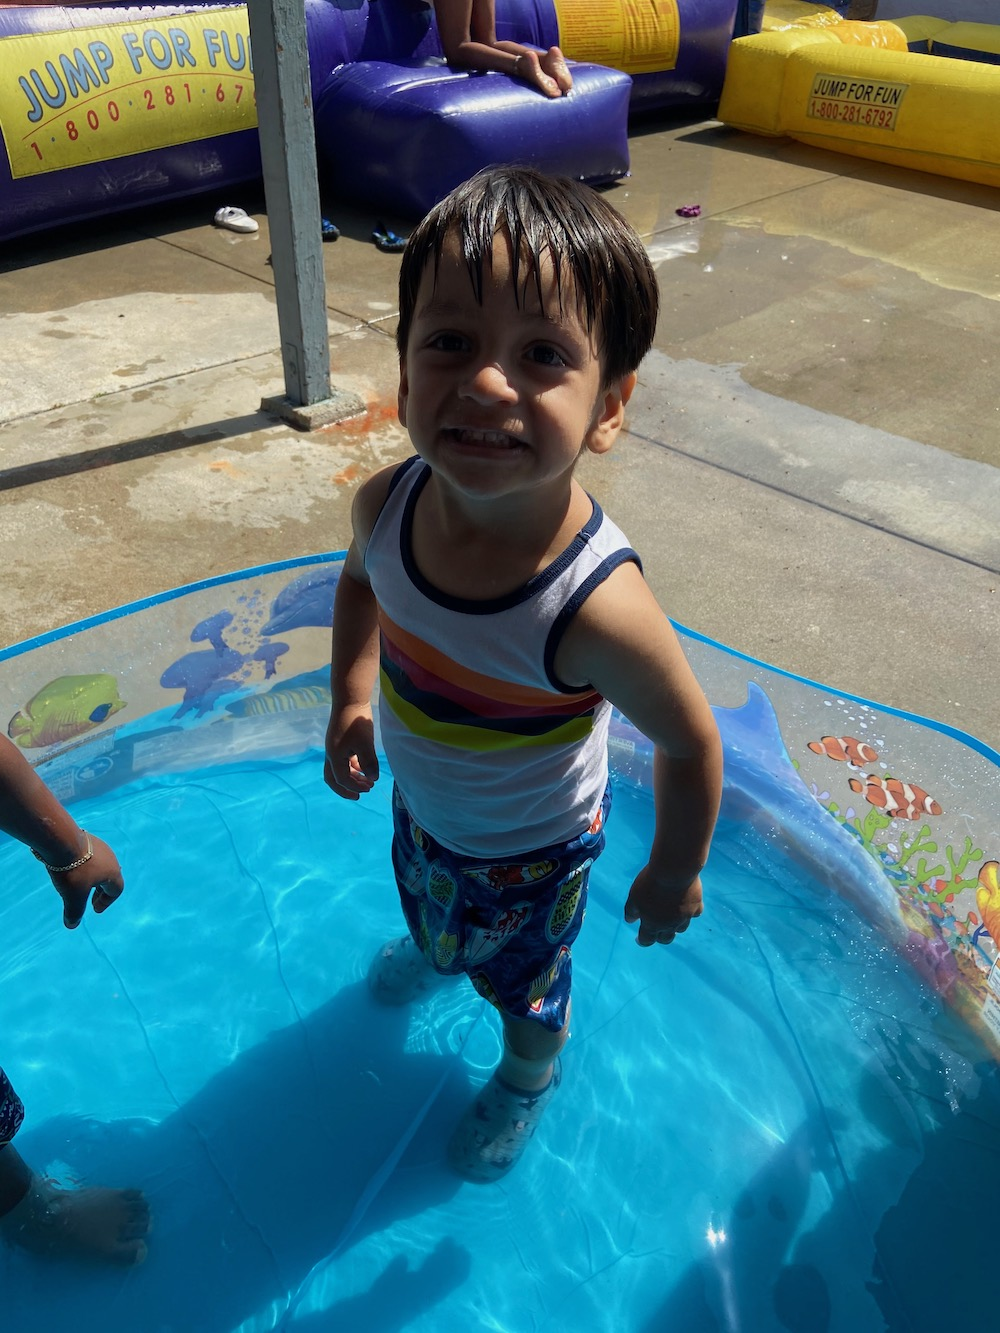 A little boy is smiling during play in a kiddie-sized pool.